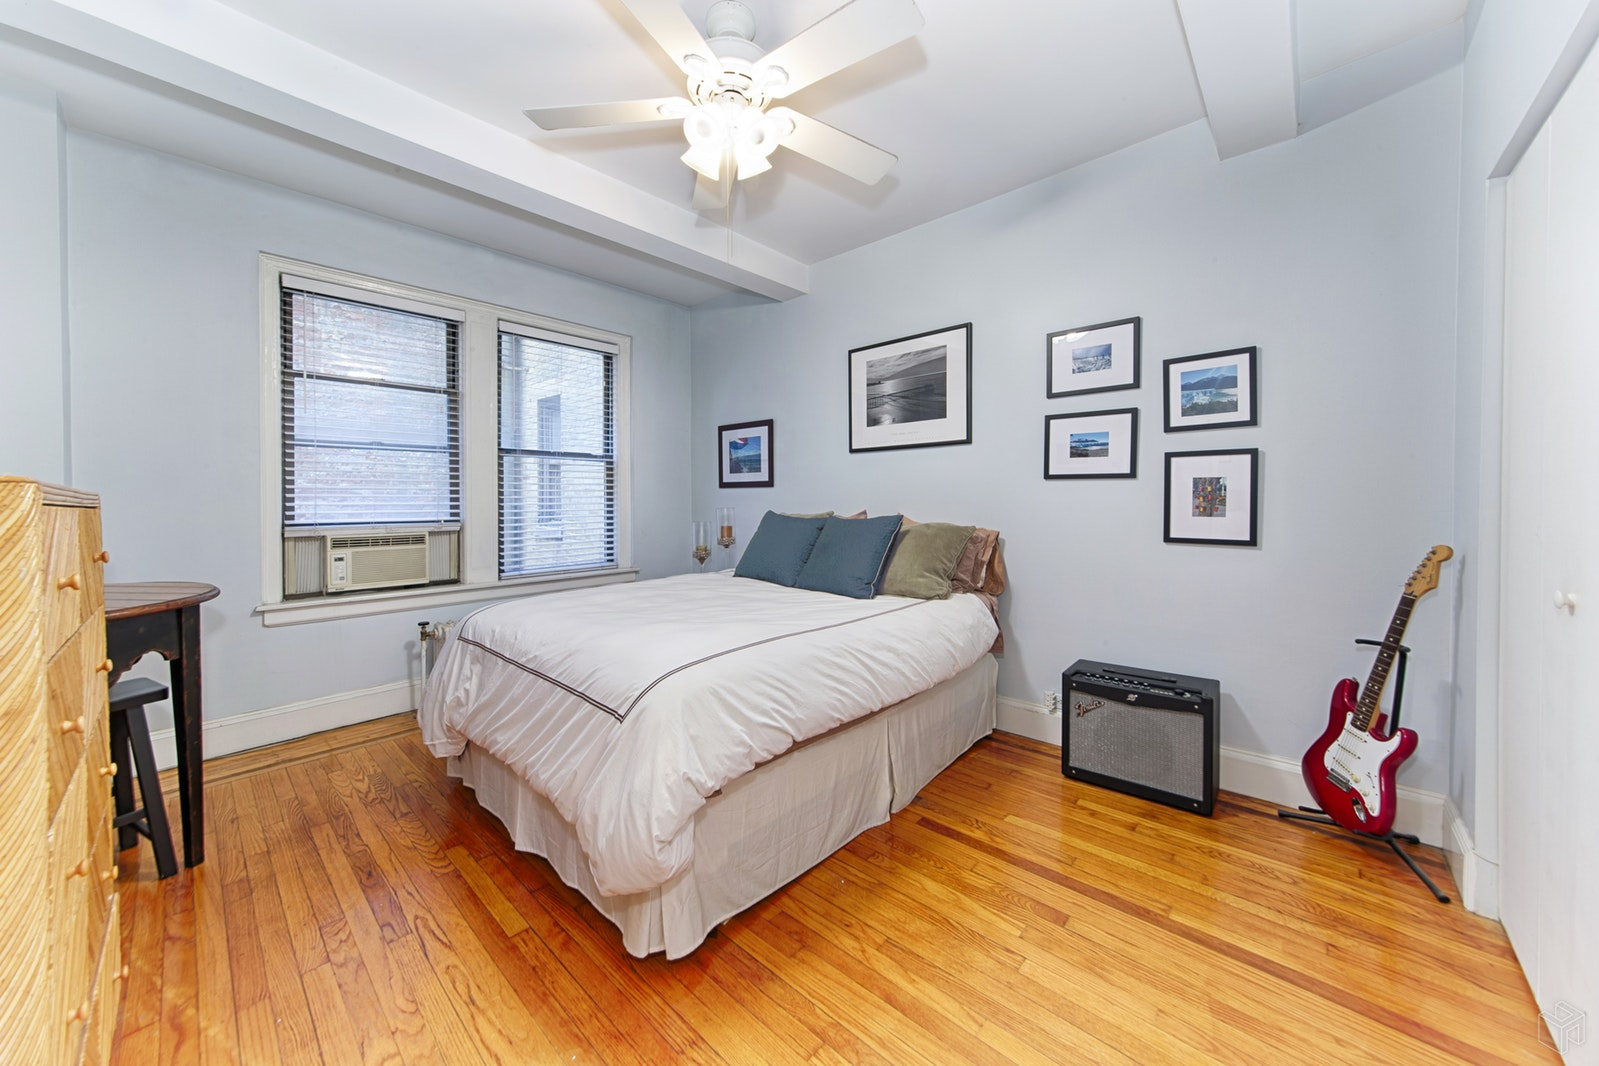 40 West 72nd Street 34, Upper West Side, NYC, 10023, $590,000, Sold Property, Halstead Real Estate, Photo 3